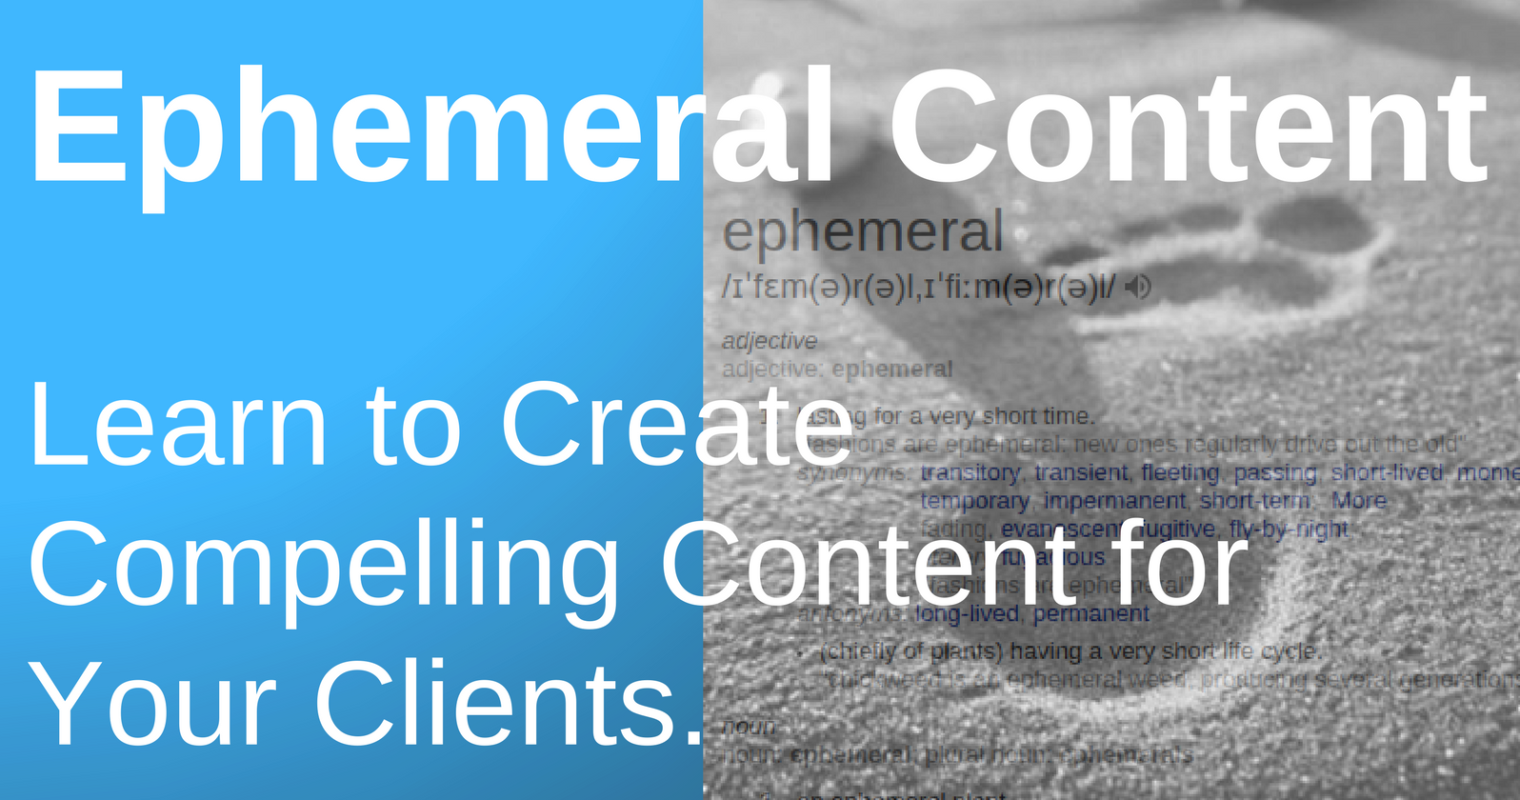 Ephemeral Content: Everything Marketers Need to Know